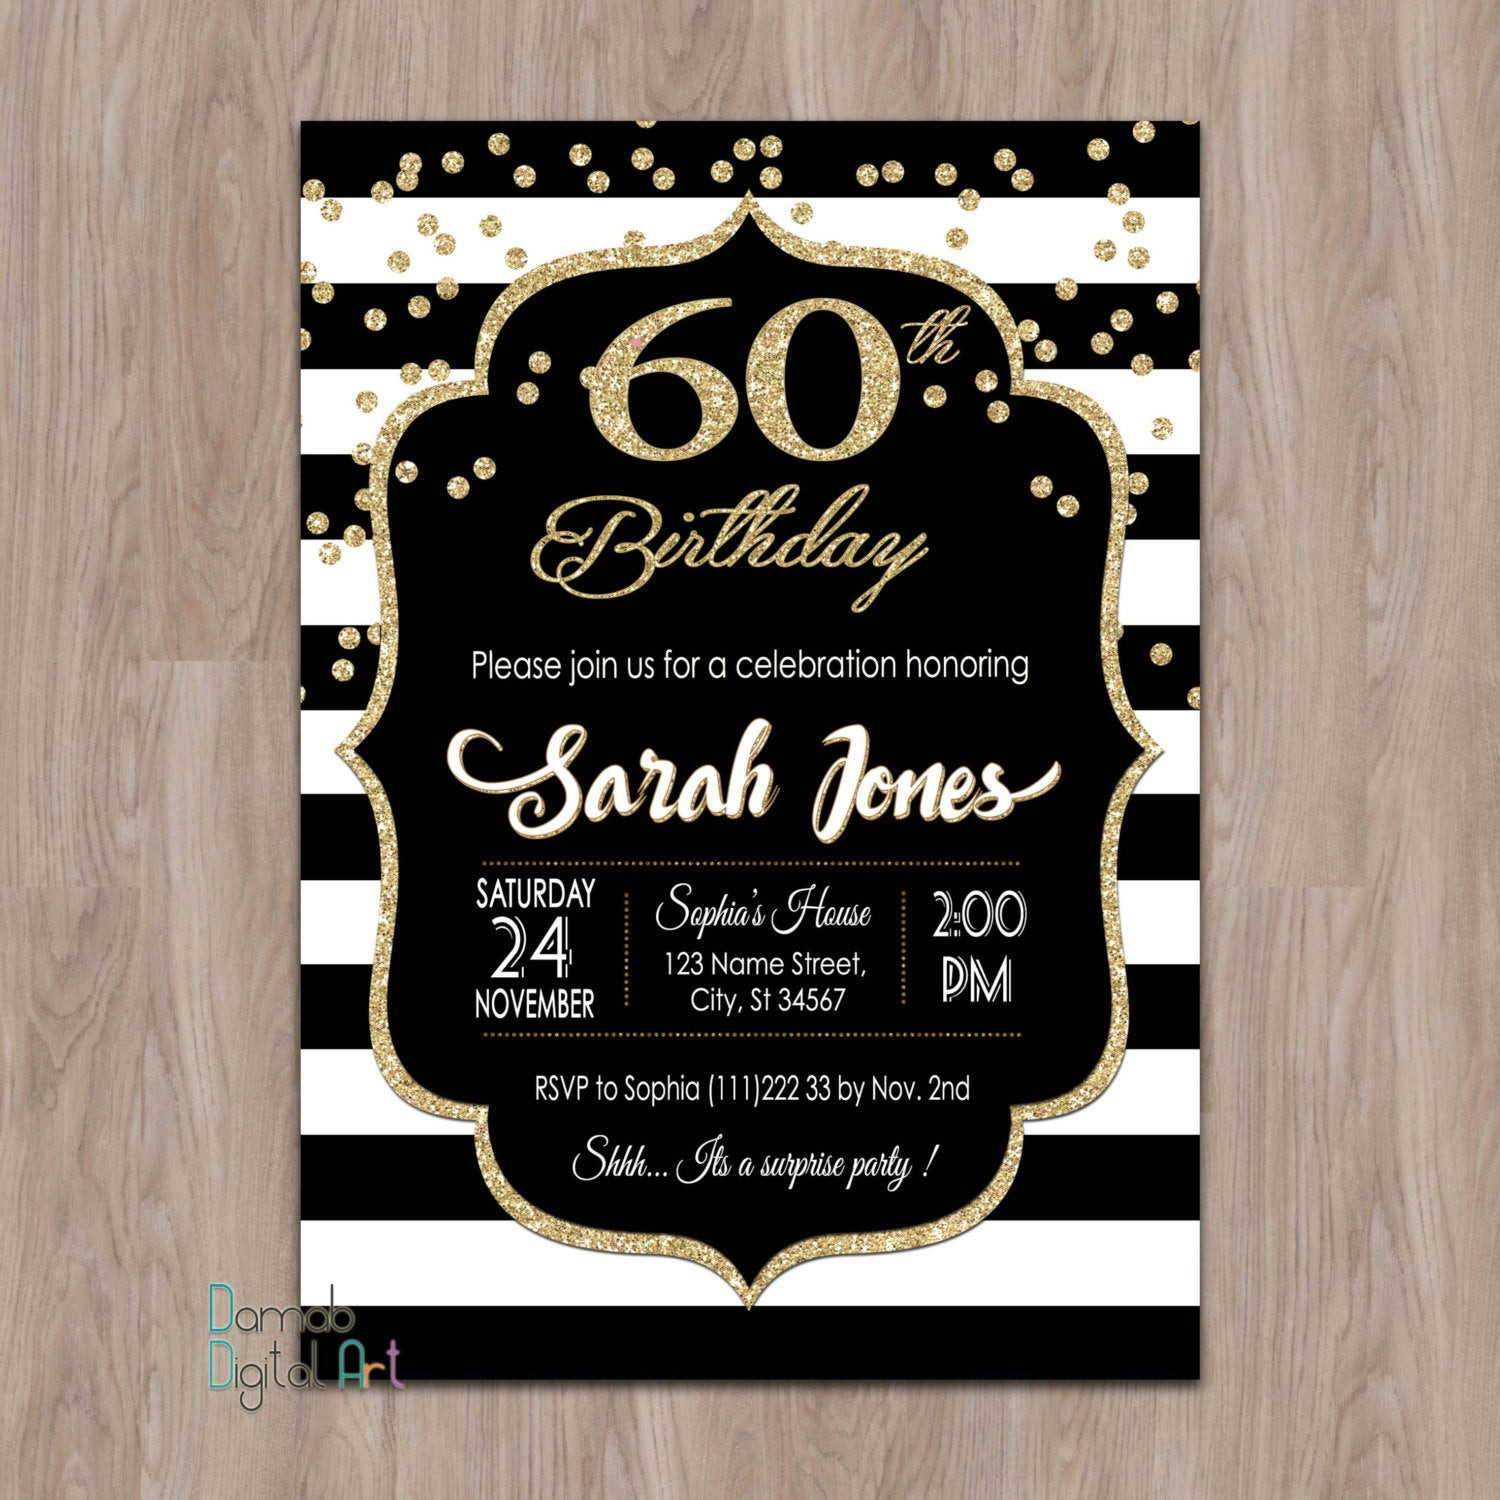 Best ideas about 60th Birthday Invitations . Save or Pin 60th birthday invitations 60th birthday invitations for Now.